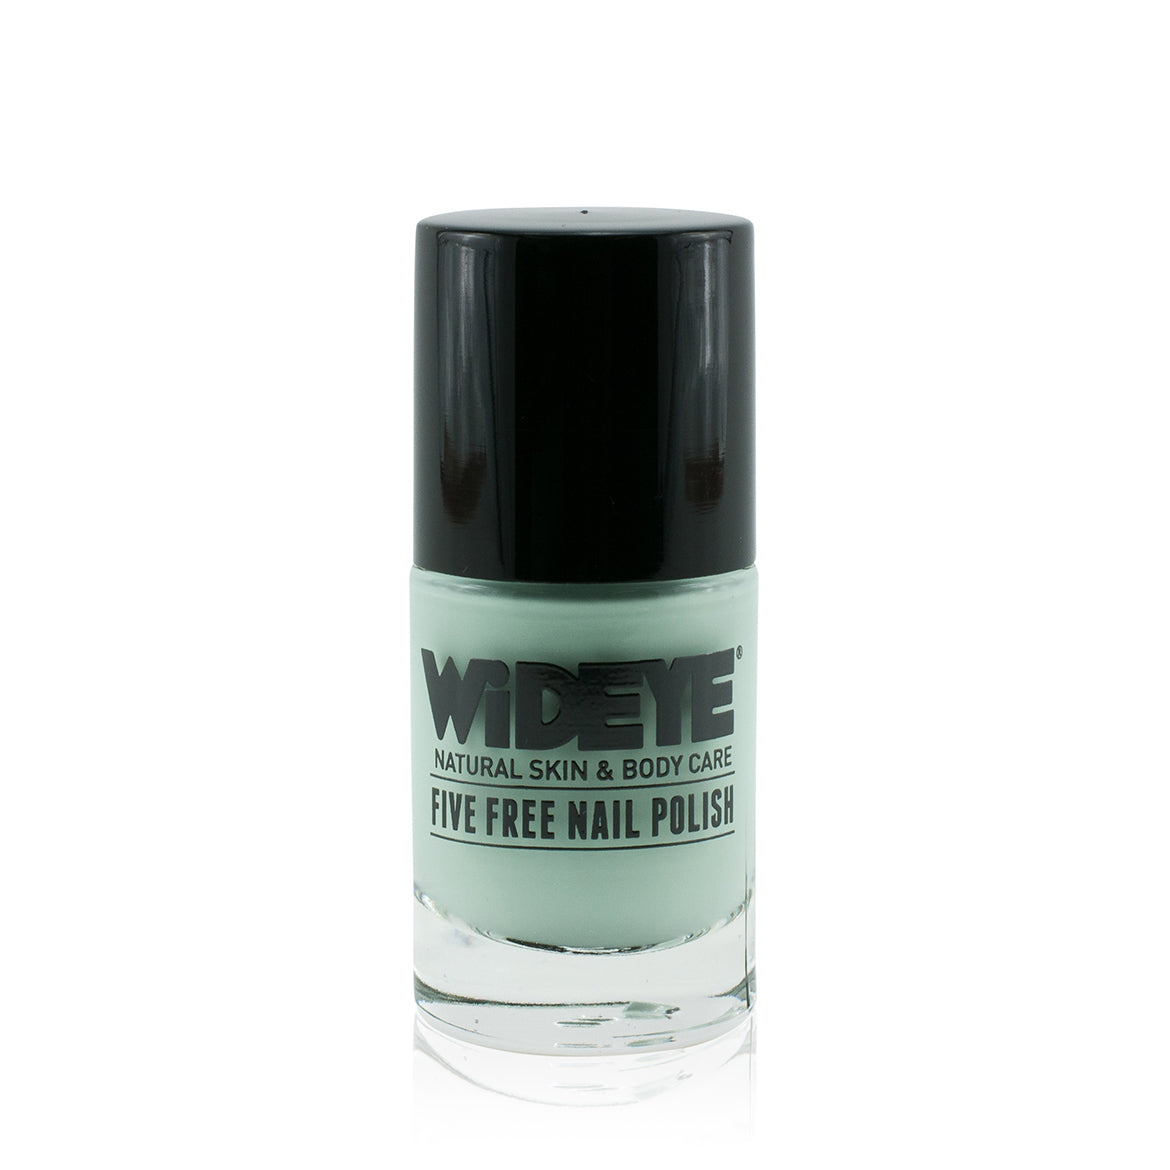 Mint green nail polish in glass bottle by WiDEYE.